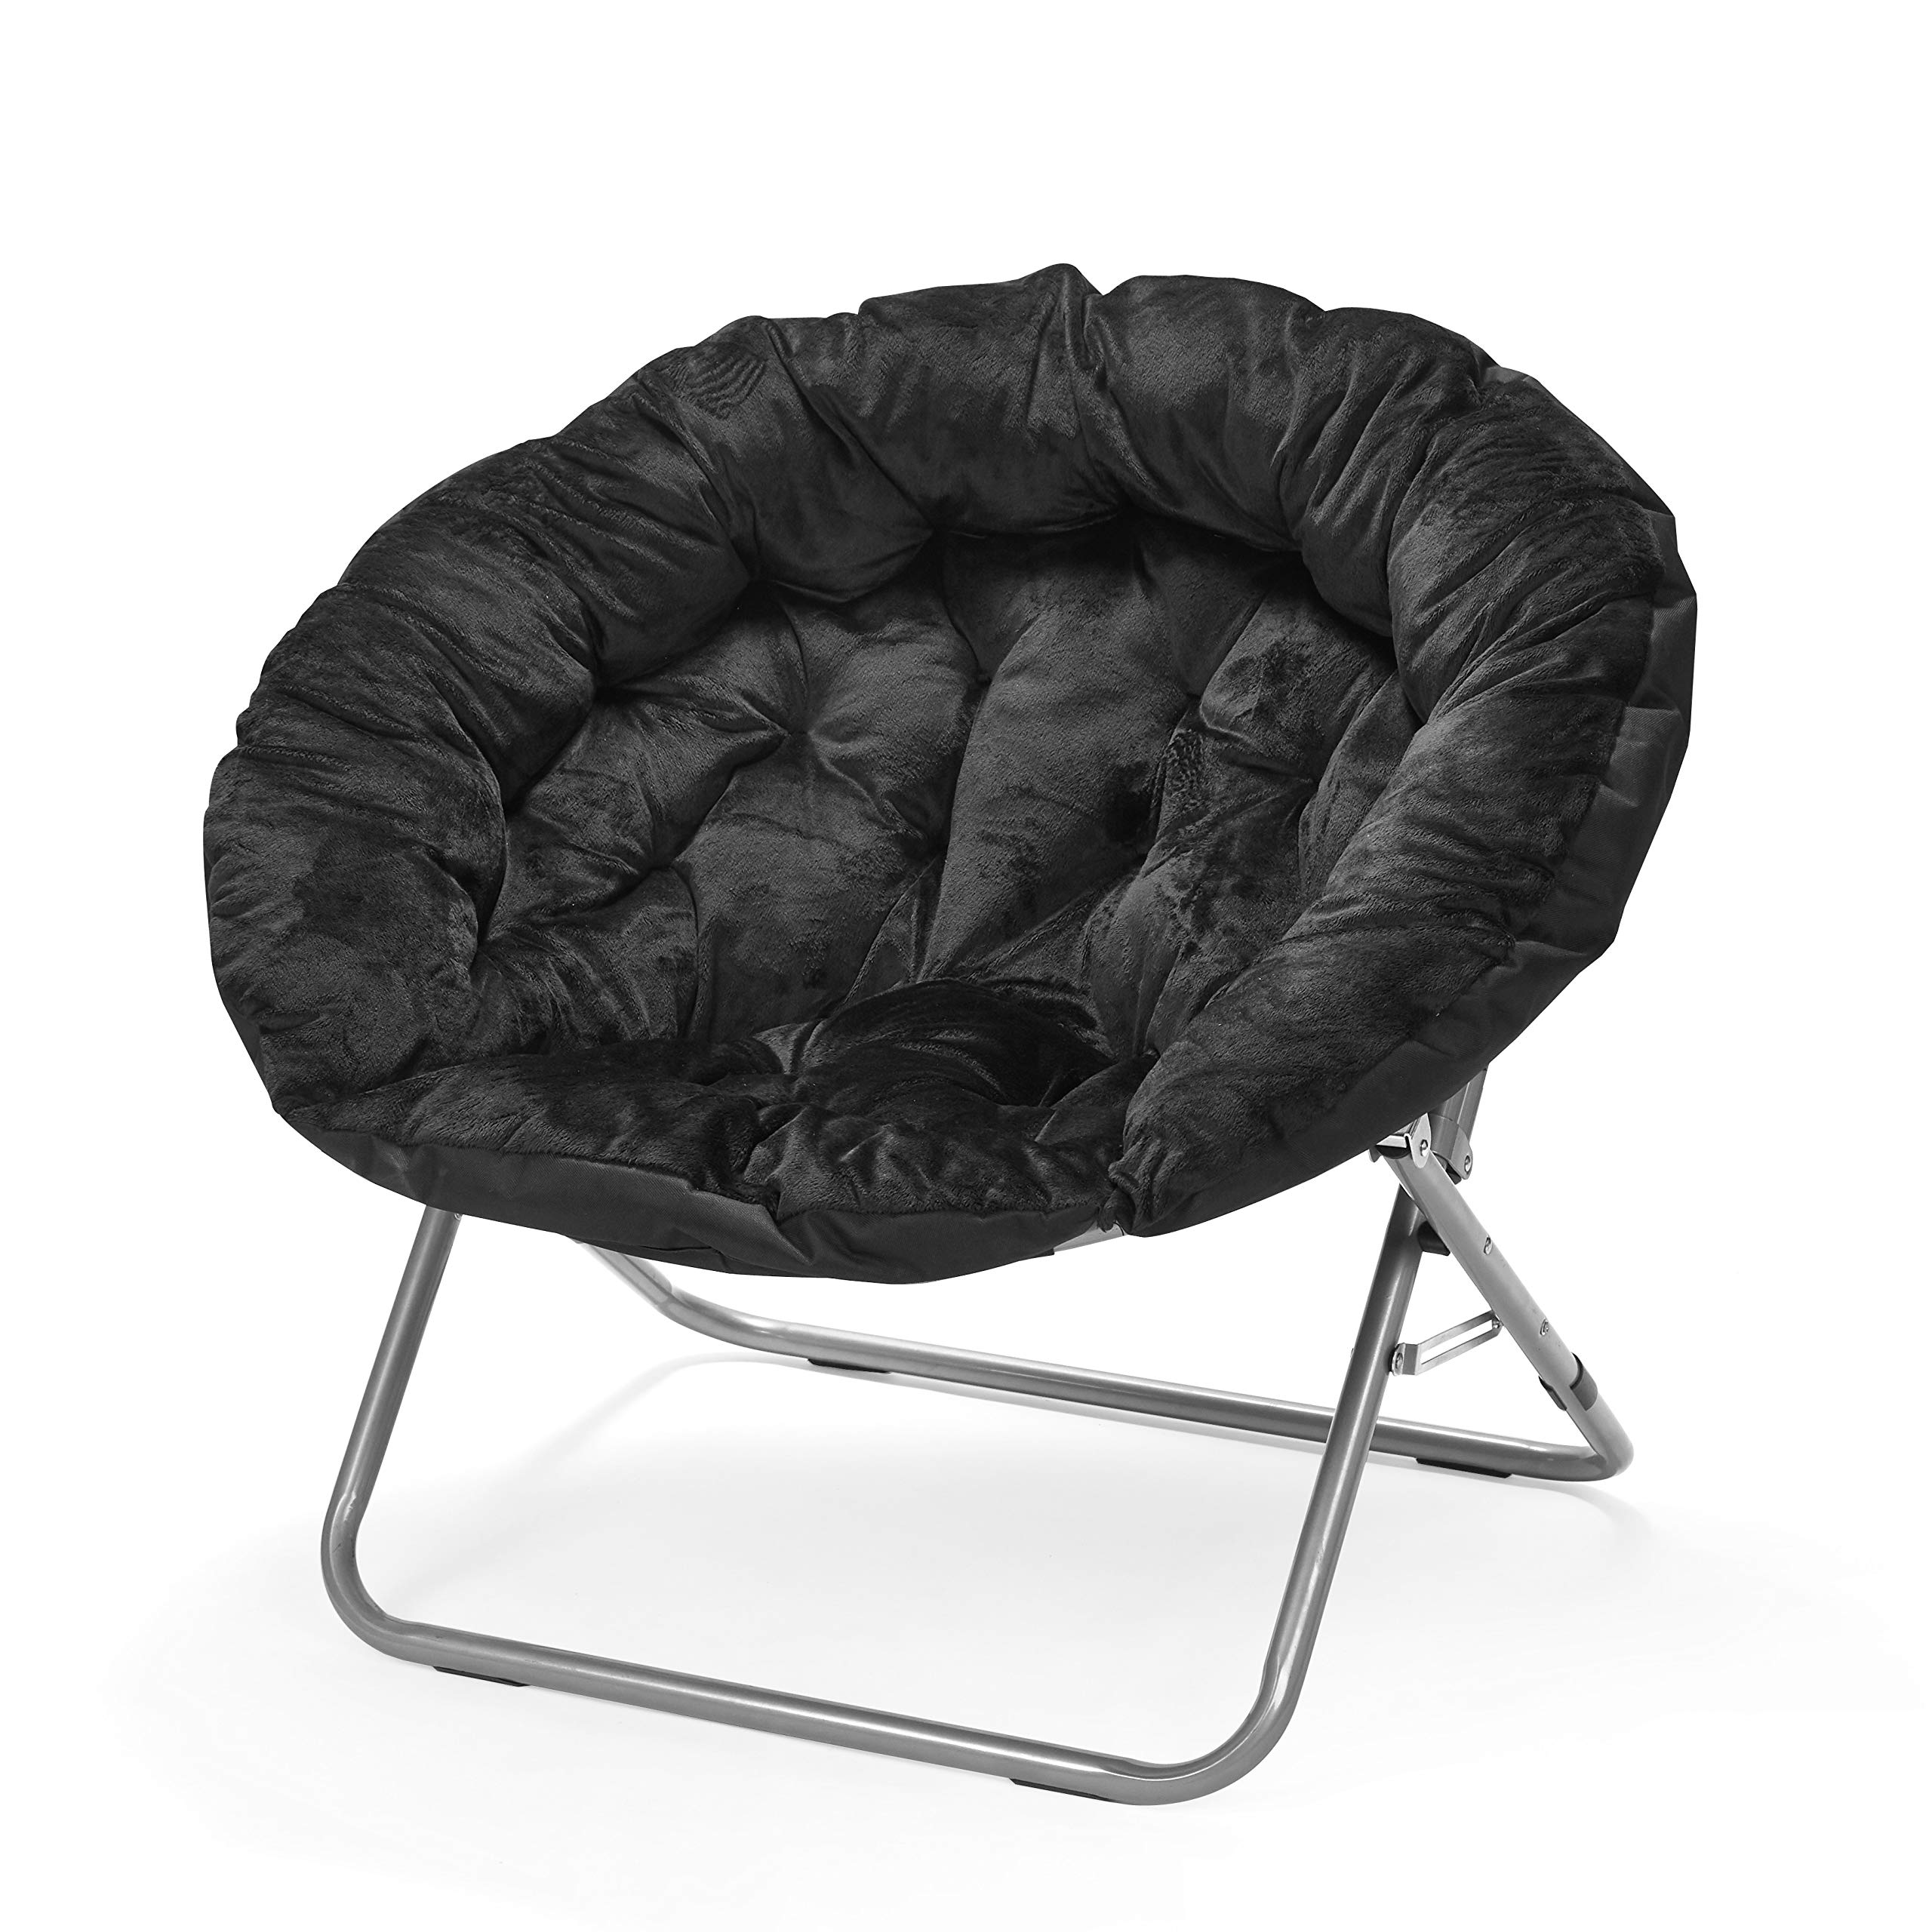 Urban Shop Oversized Micromink Moon Saucer Chair, Black - 37'' L x 30'' W X 30'' D by Urban Shop